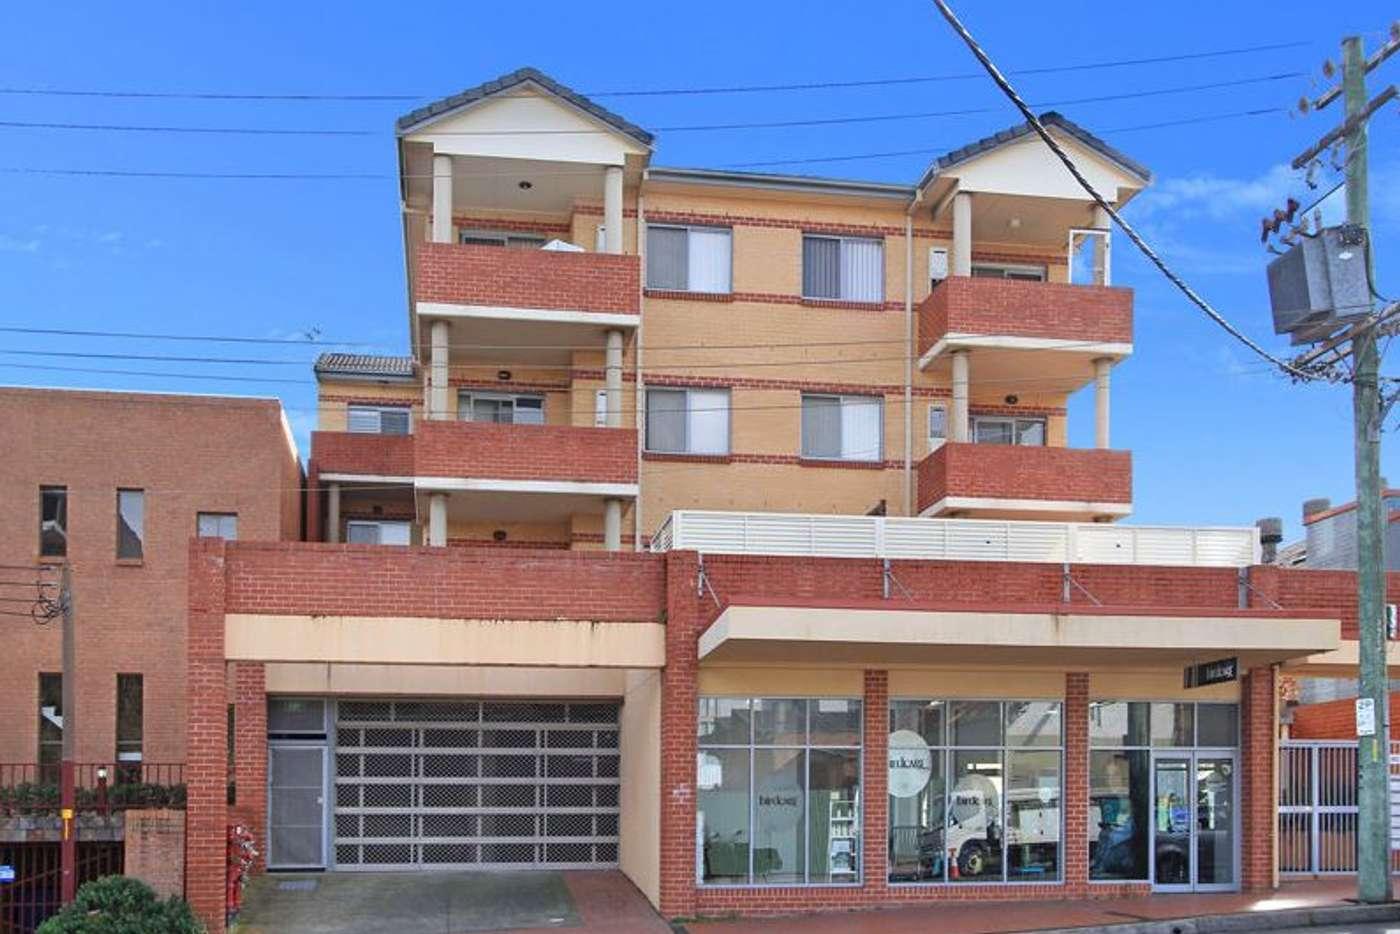 Main view of Homely unit listing, 11/4-6 VICTORIA STREET, Wollongong NSW 2500